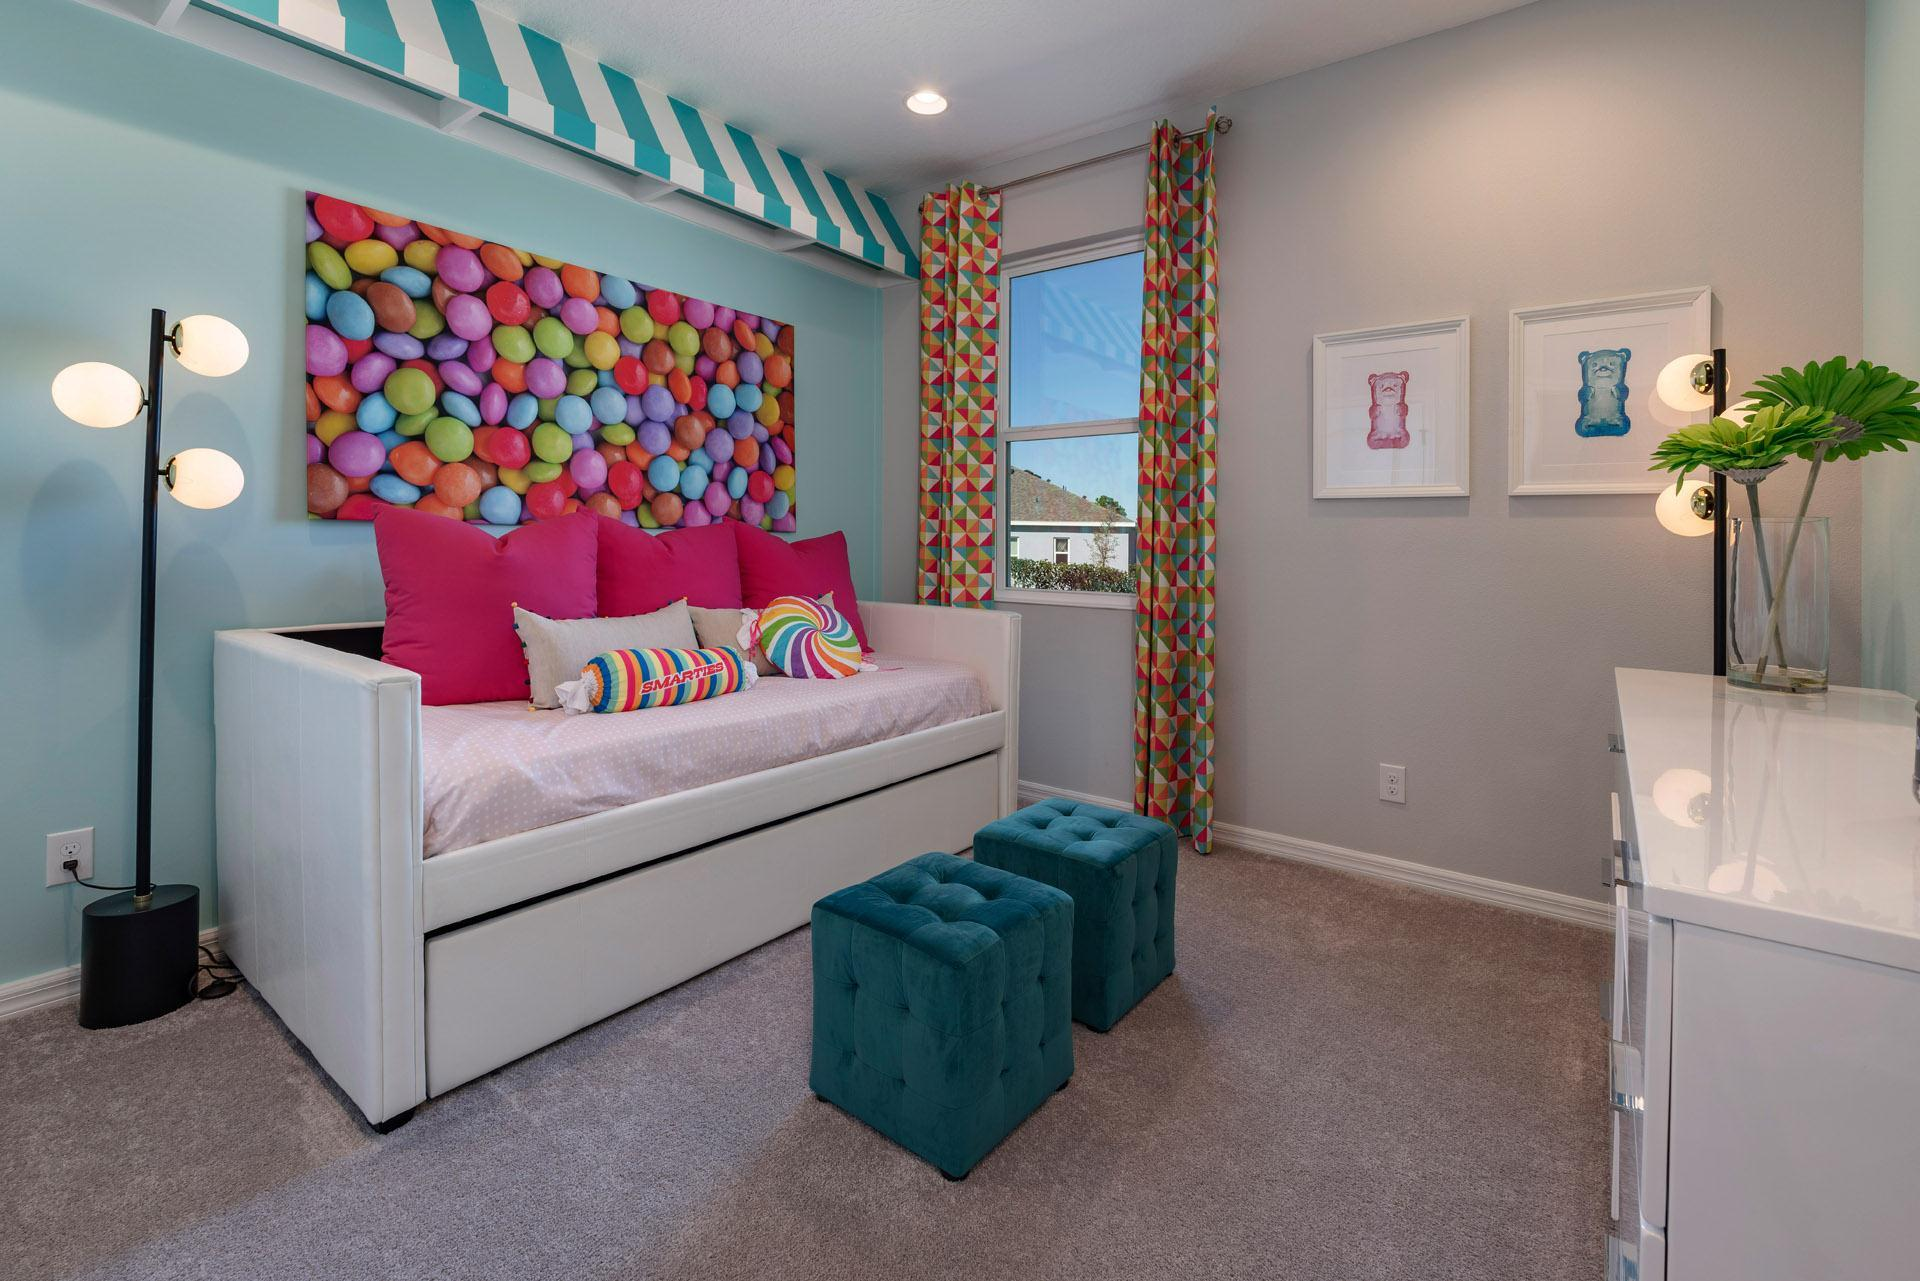 Bedroom featured in the Delano By Hanover Family Builders in Lakeland-Winter Haven, FL